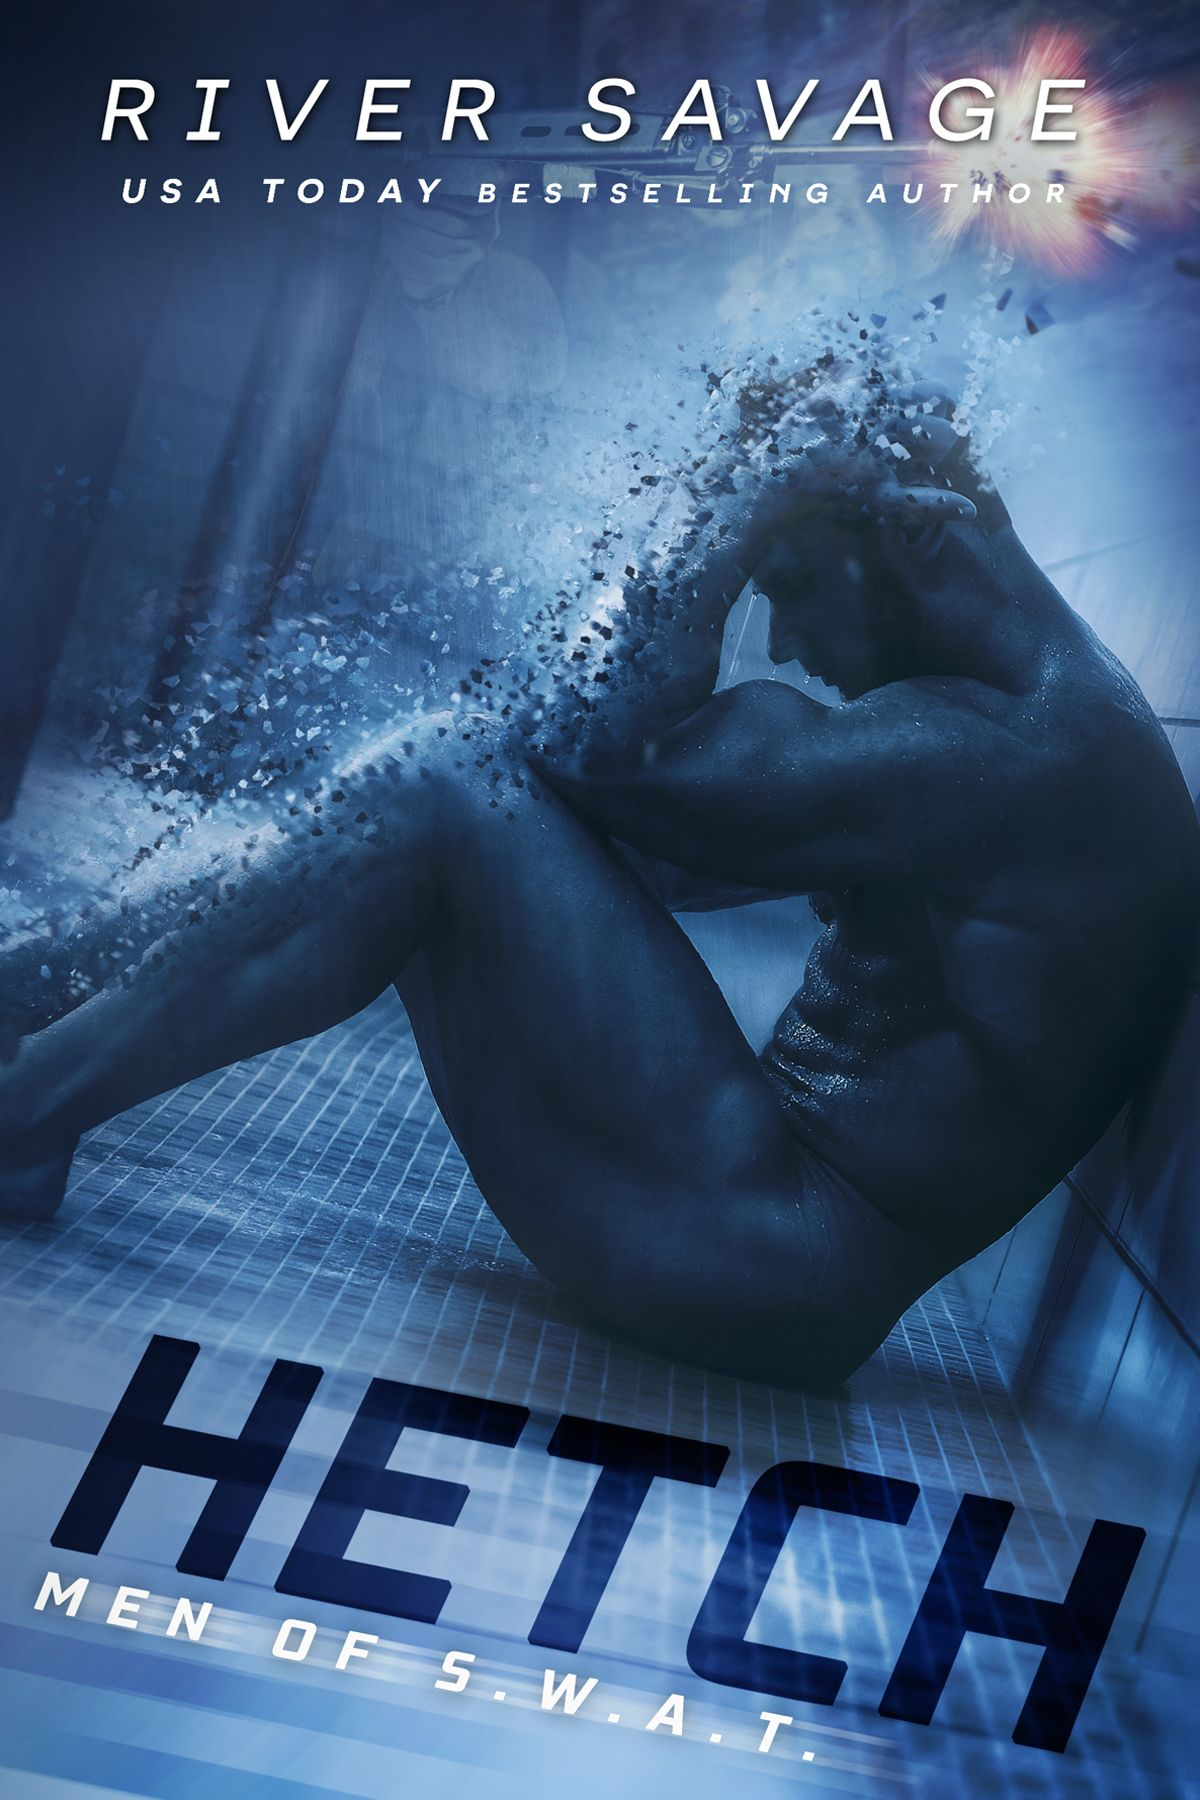 Hetch by River Savage | Men of S.W.A.T., #1 | Release Date March 2016 | Genres: Contemporary Romance, Romantic Suspense